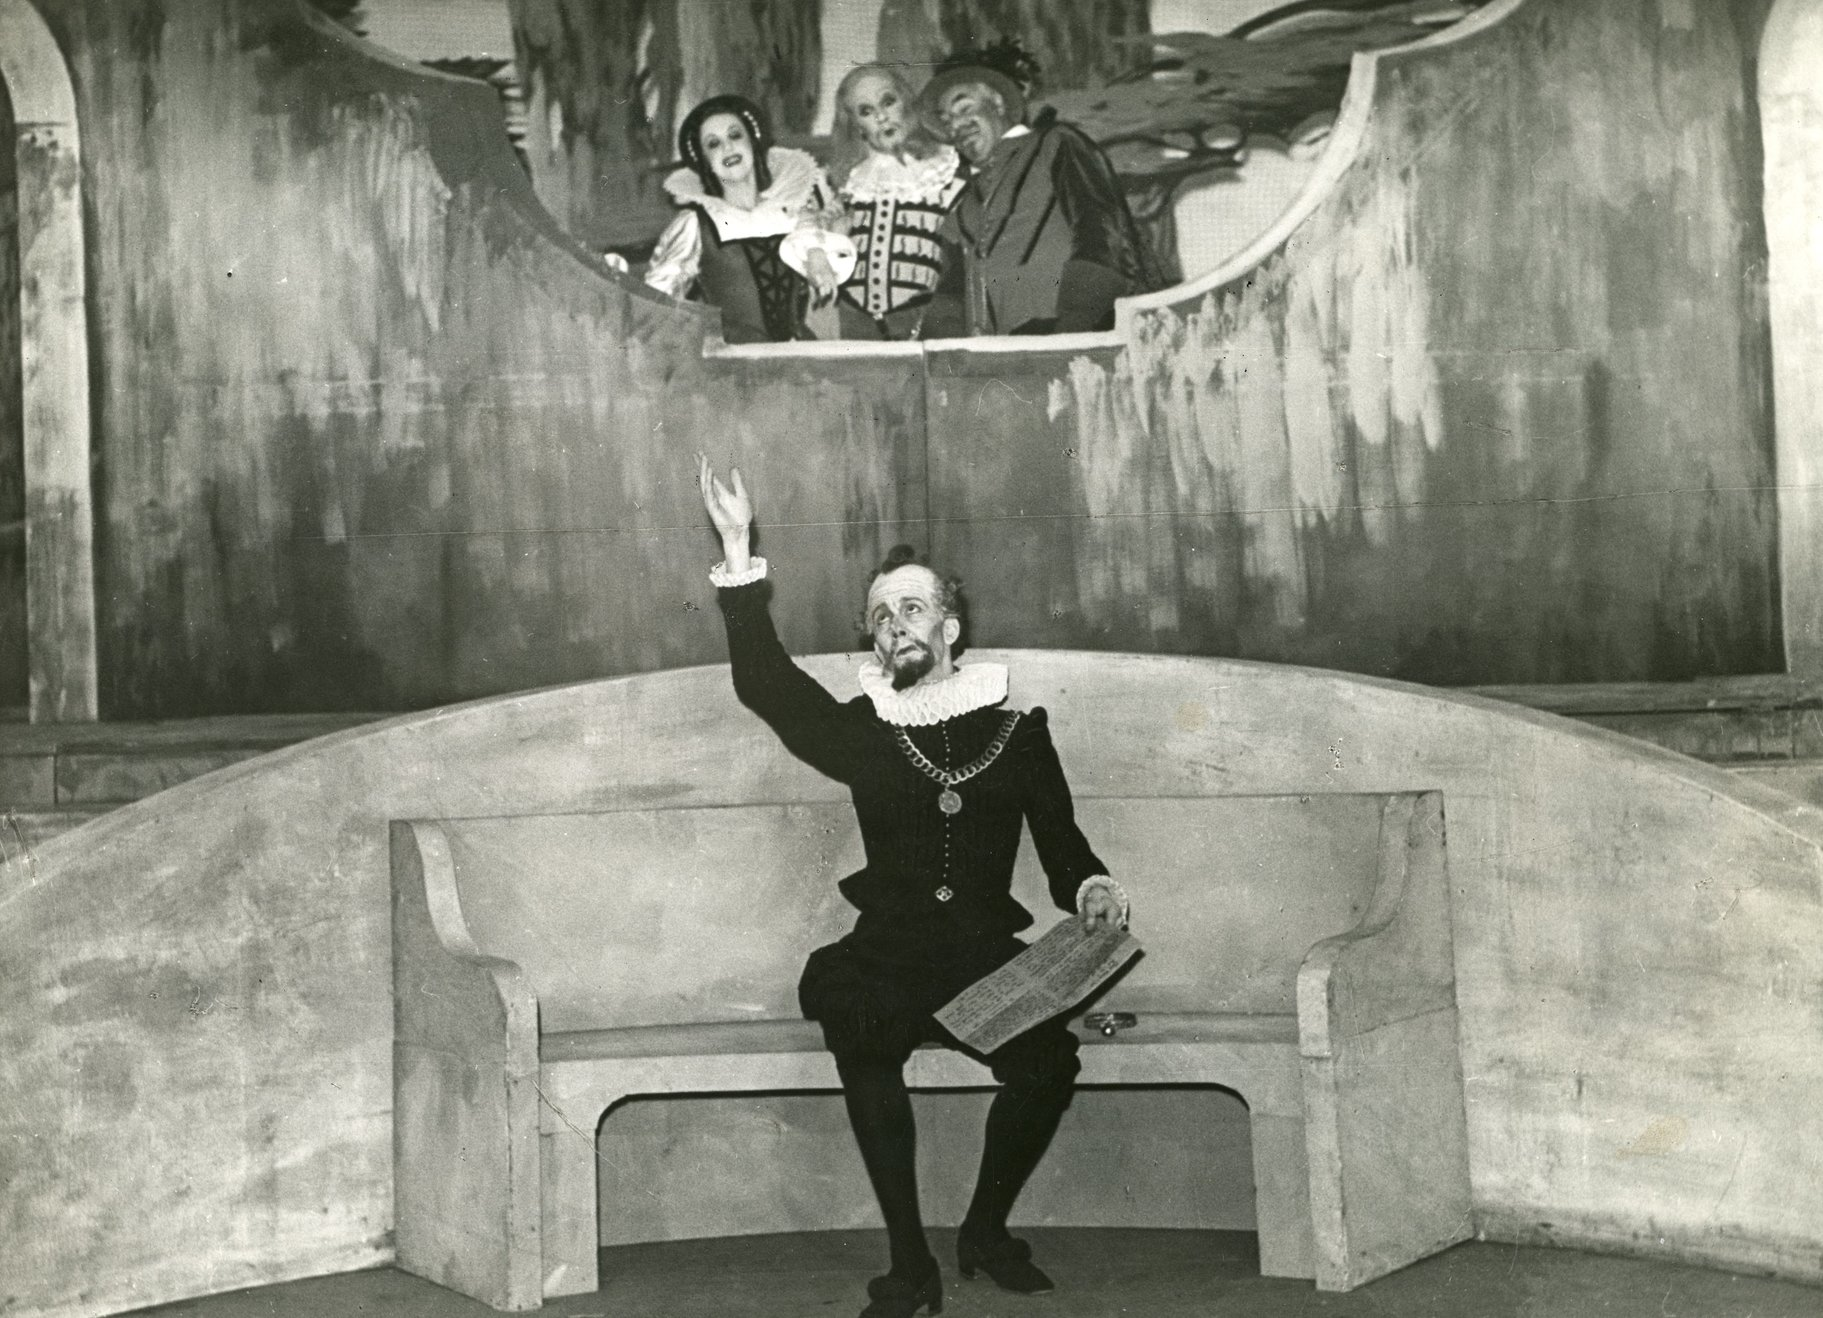 Malvolio sits on a bench wearing all black and reading a letter and is watched by Sir Toby, Sir Andrew and Maria from above in the 1945 production of Twelfth Night.